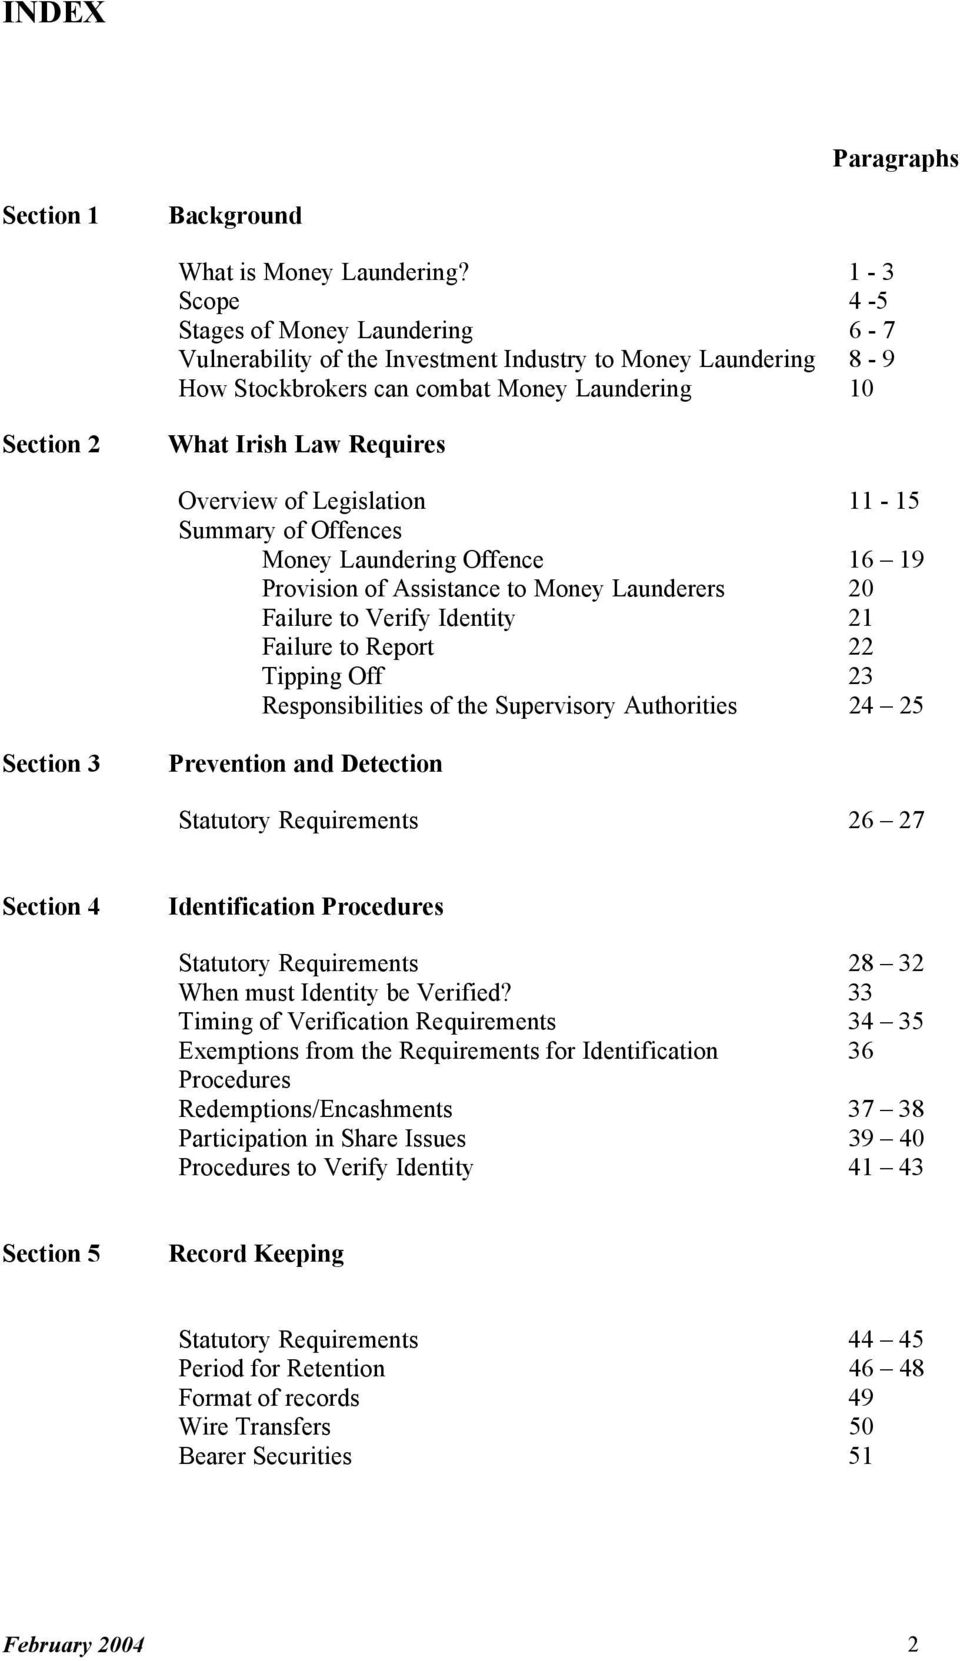 Overview of Legislation 11-15 Summary of Offences Money Laundering Offence 16 19 Provision of Assistance to Money Launderers 20 Failure to Verify Identity 21 Failure to Report 22 Tipping Off 23